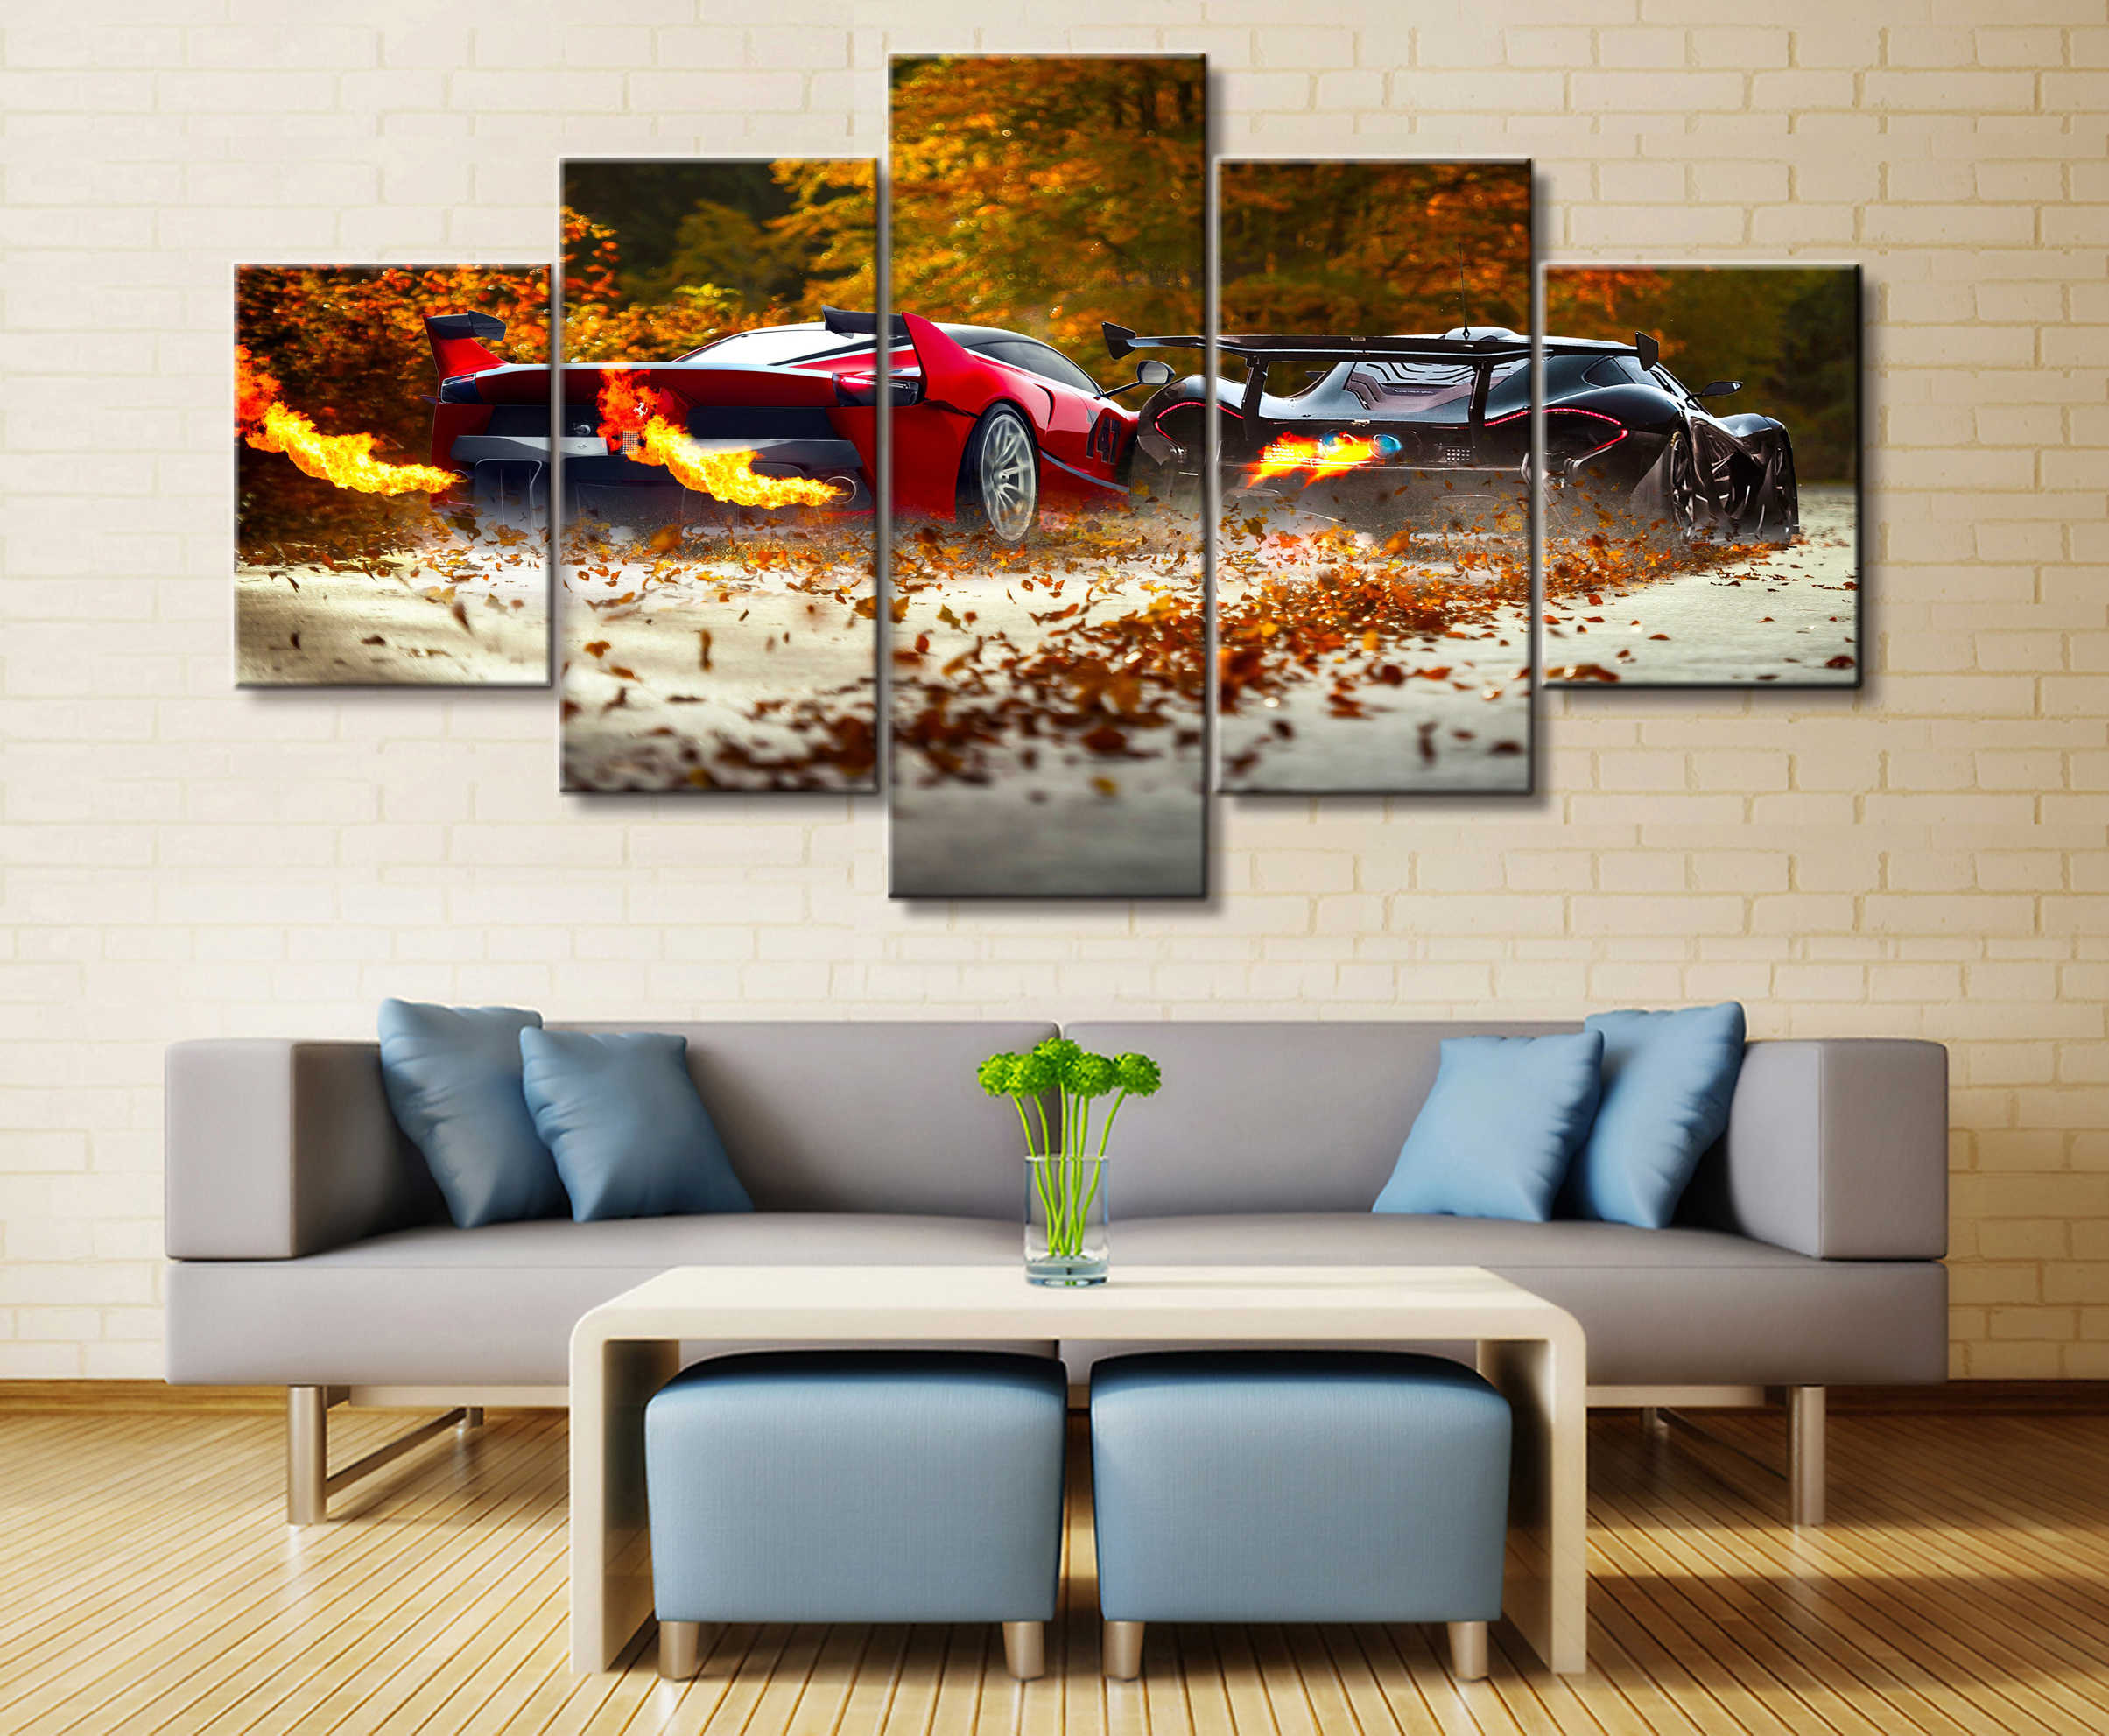 5 Pieces P1 and Laferrari Car Poster Modern Wall Art Decorative Modular Framework Picture Canvas HD Printed One Set Painting